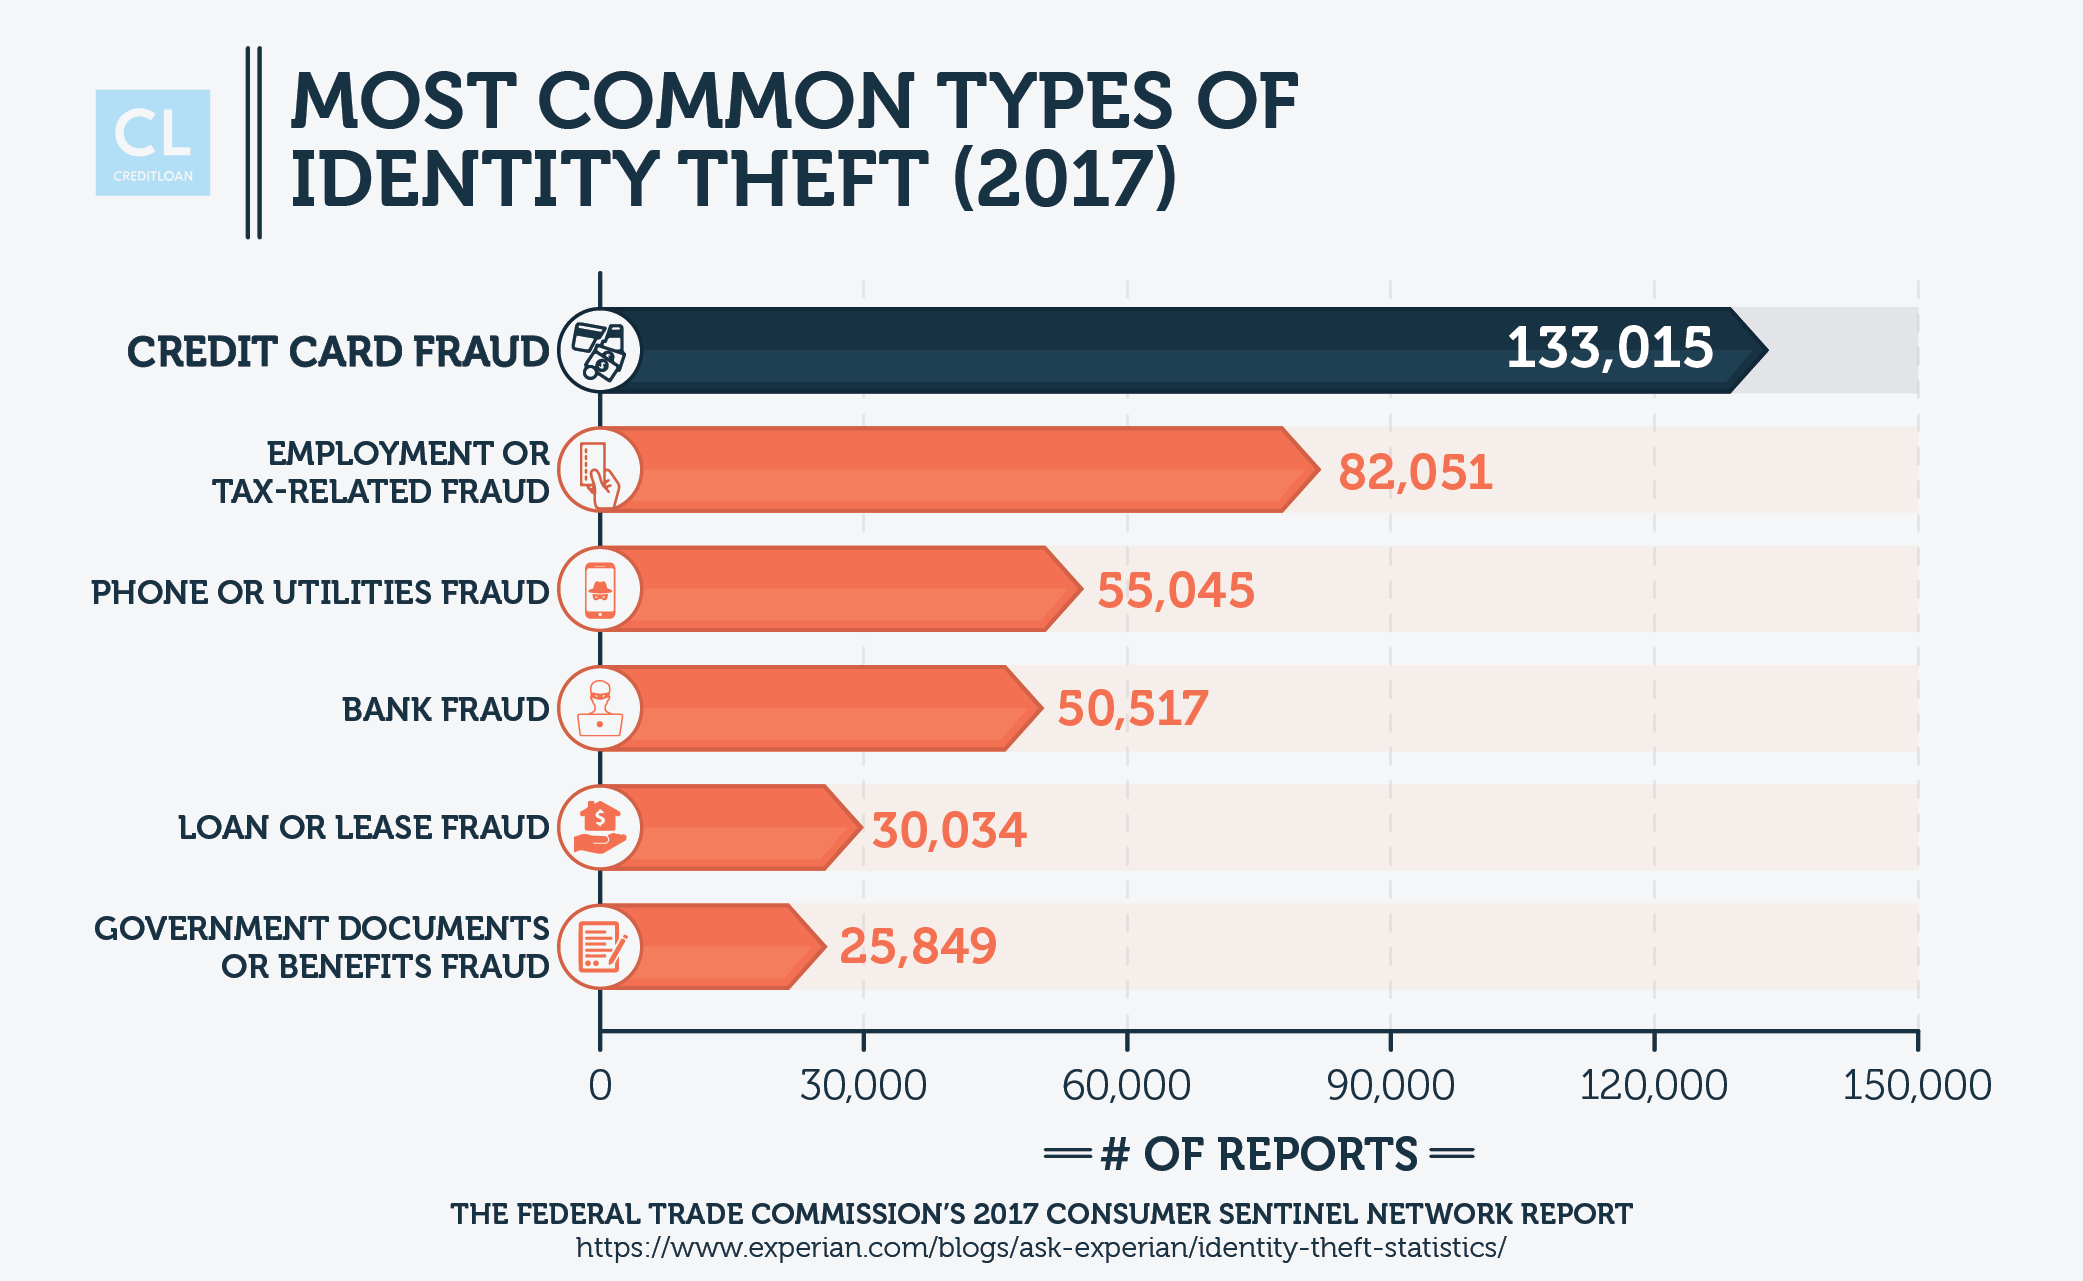 Most Common Types of Identity Theft